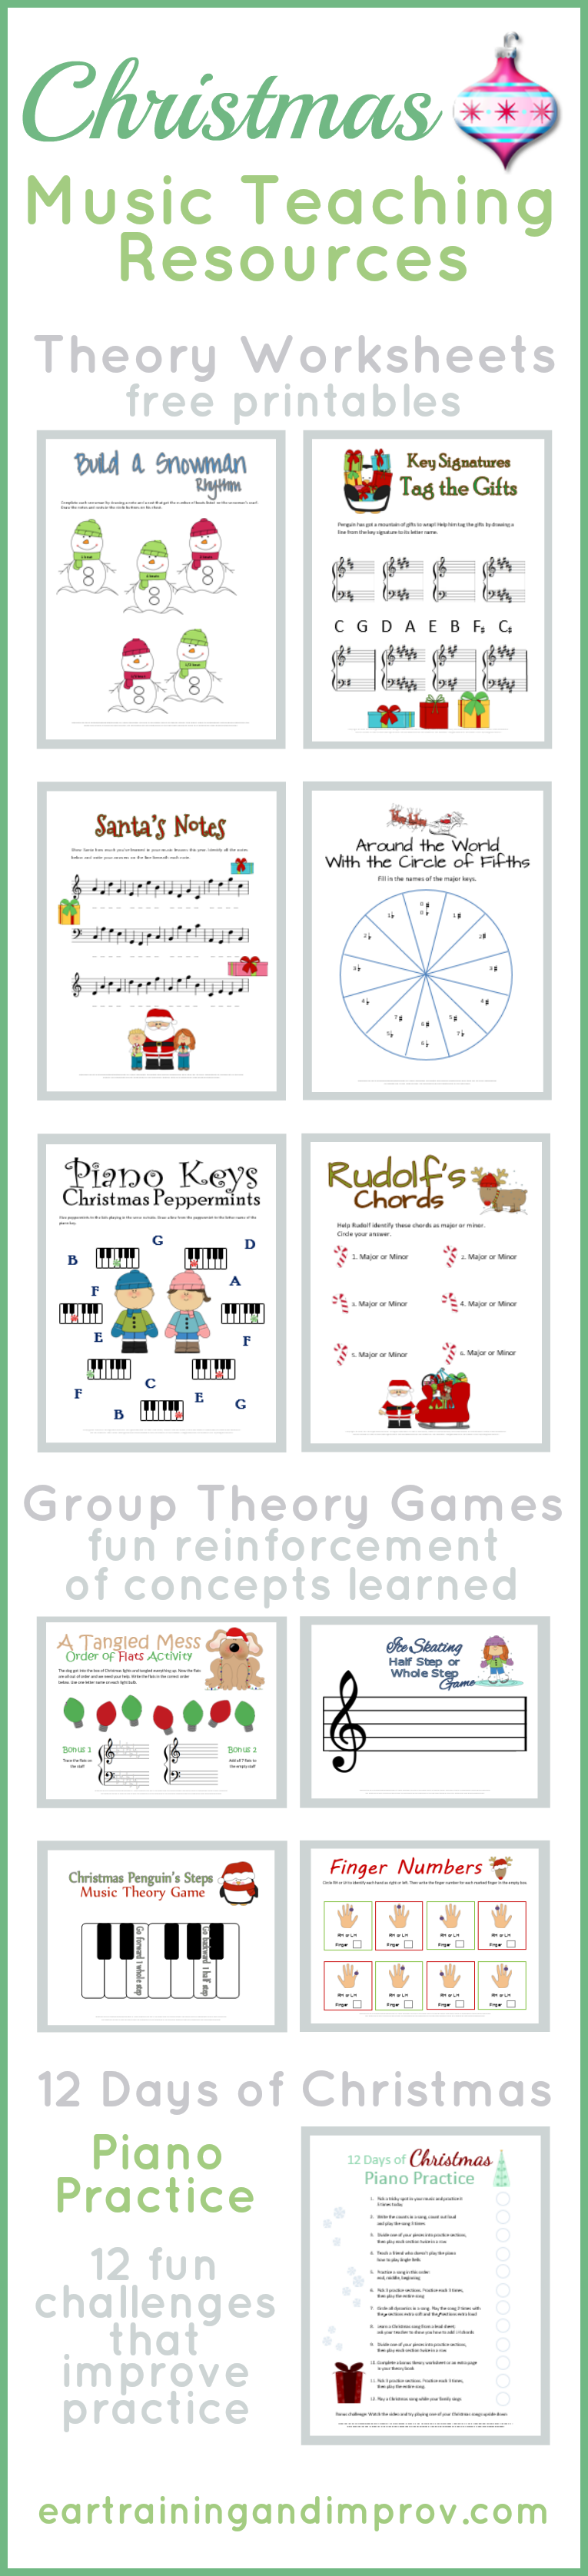 Christmas Music Theory Worksheets 20 Free Printables – Printable Music Theory Worksheets